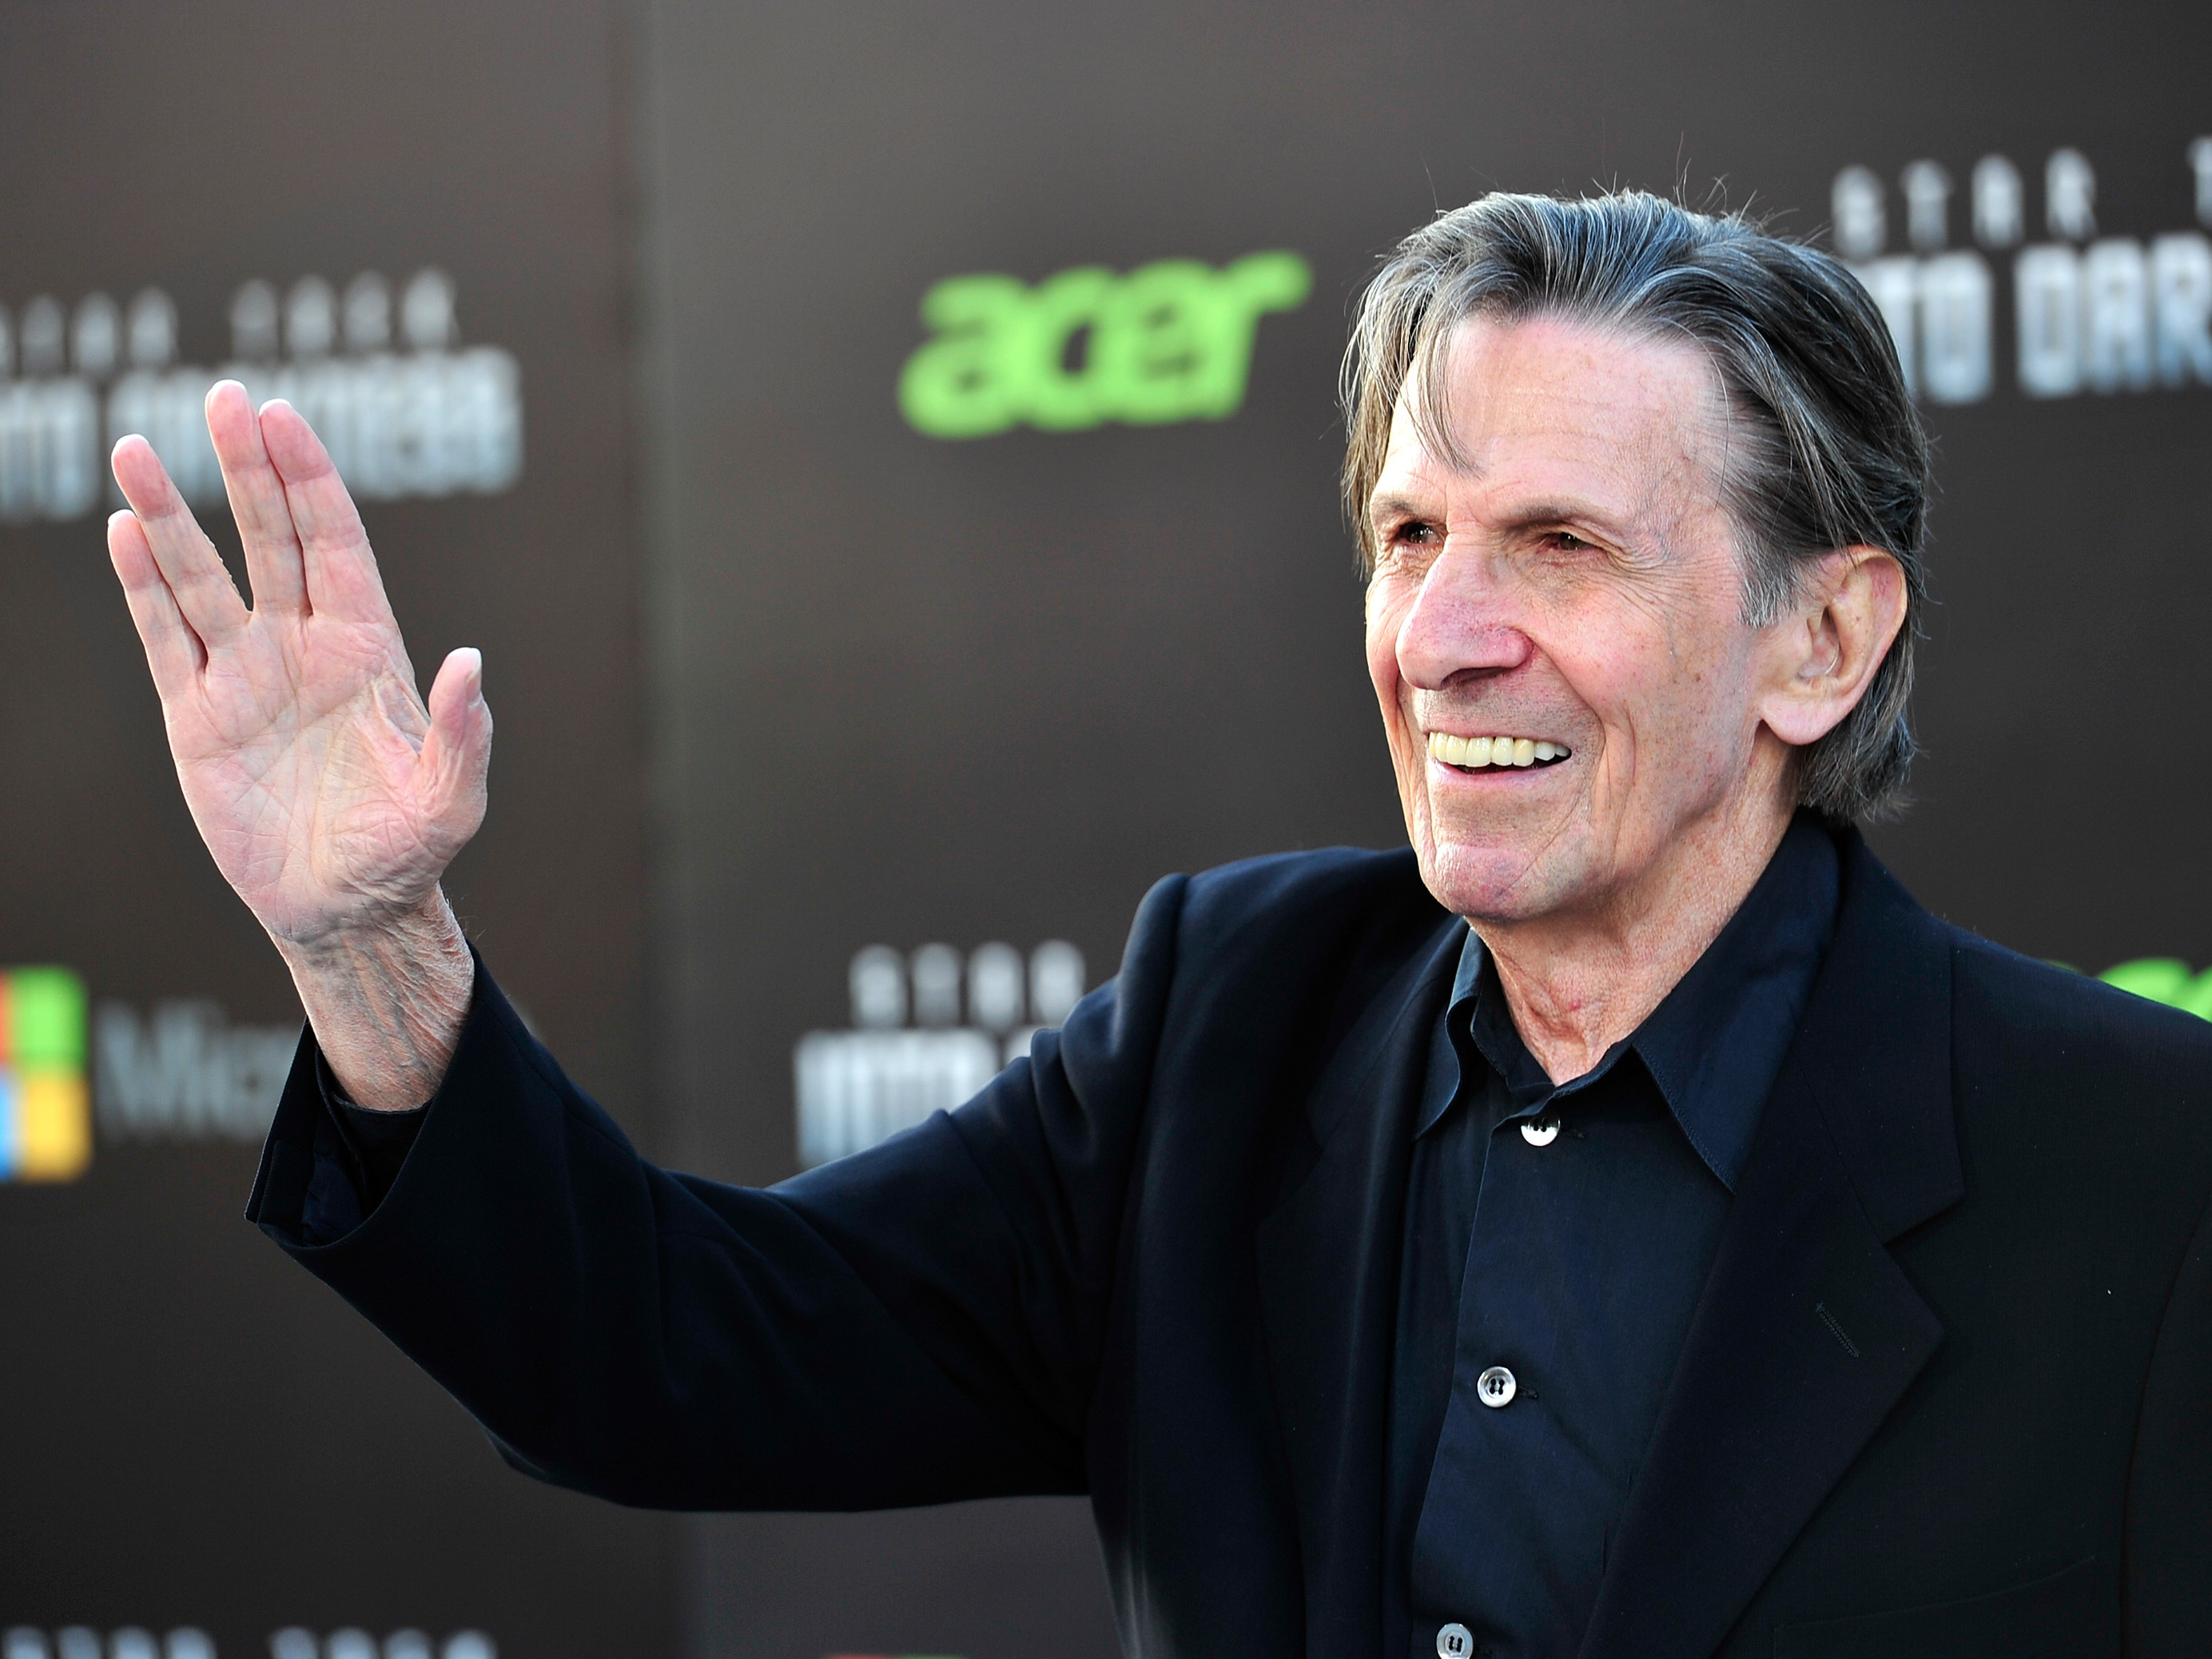 He Was, And Will Always Be, Our Friend: Remembering Leonard Nimoy